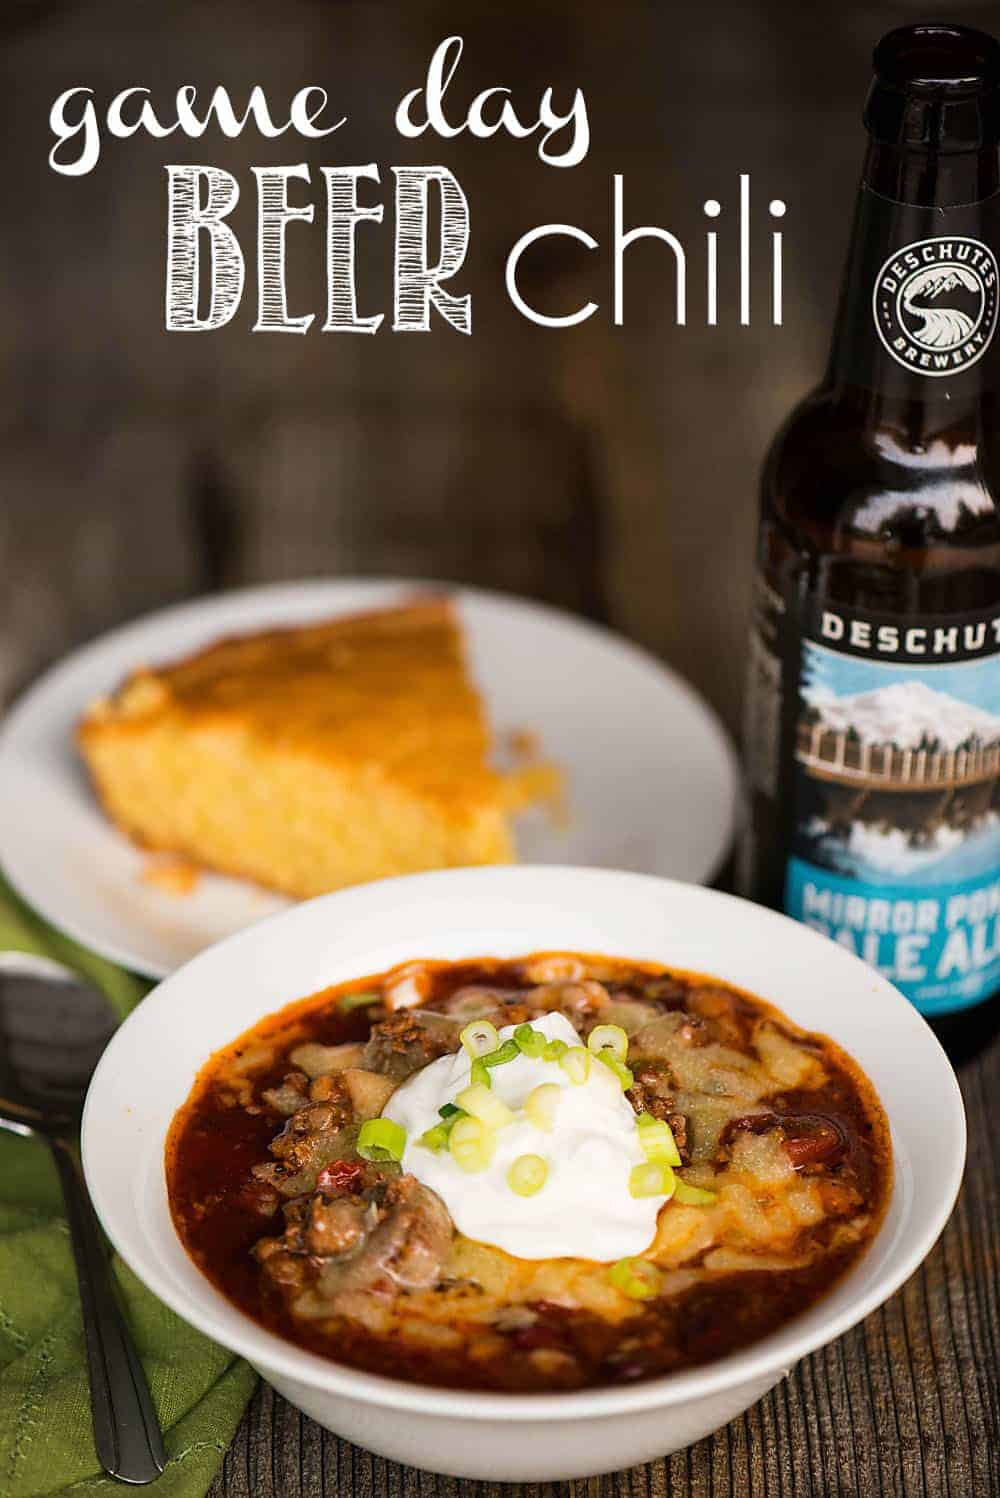 bowl of chili with a side of corn bread and a bottle of beer